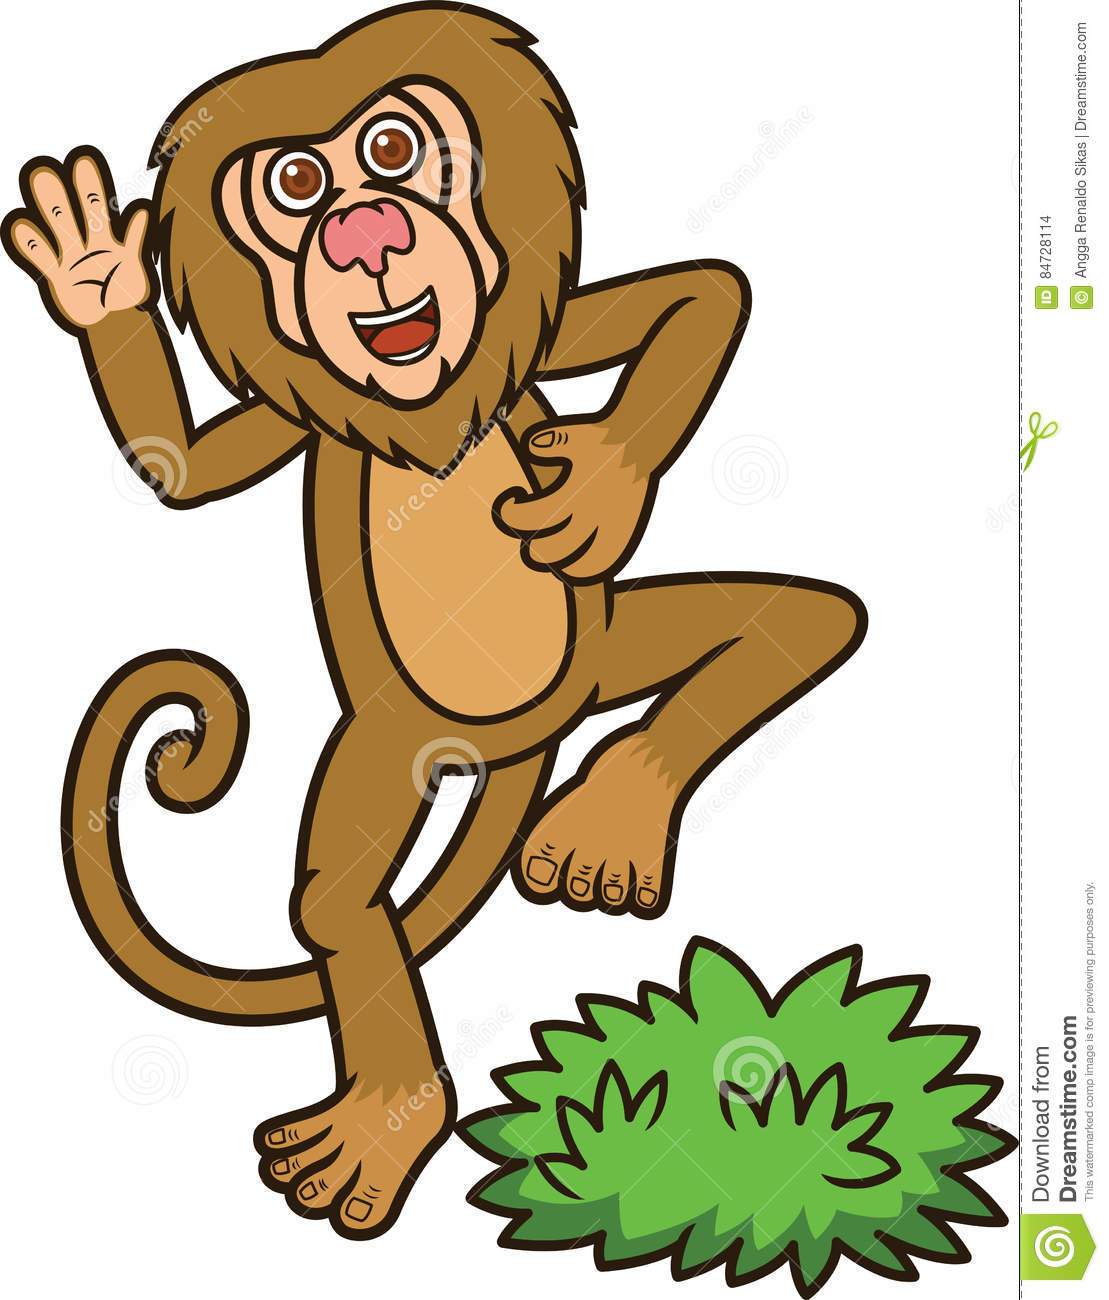 Funny Baboon Cartoon Stock Illustrations 1 020 Funny Baboon Cartoon Stock Illustrations Vectors Clipart Dreamstime Are you searching for cartoon baboon png images or vector? dreamstime com